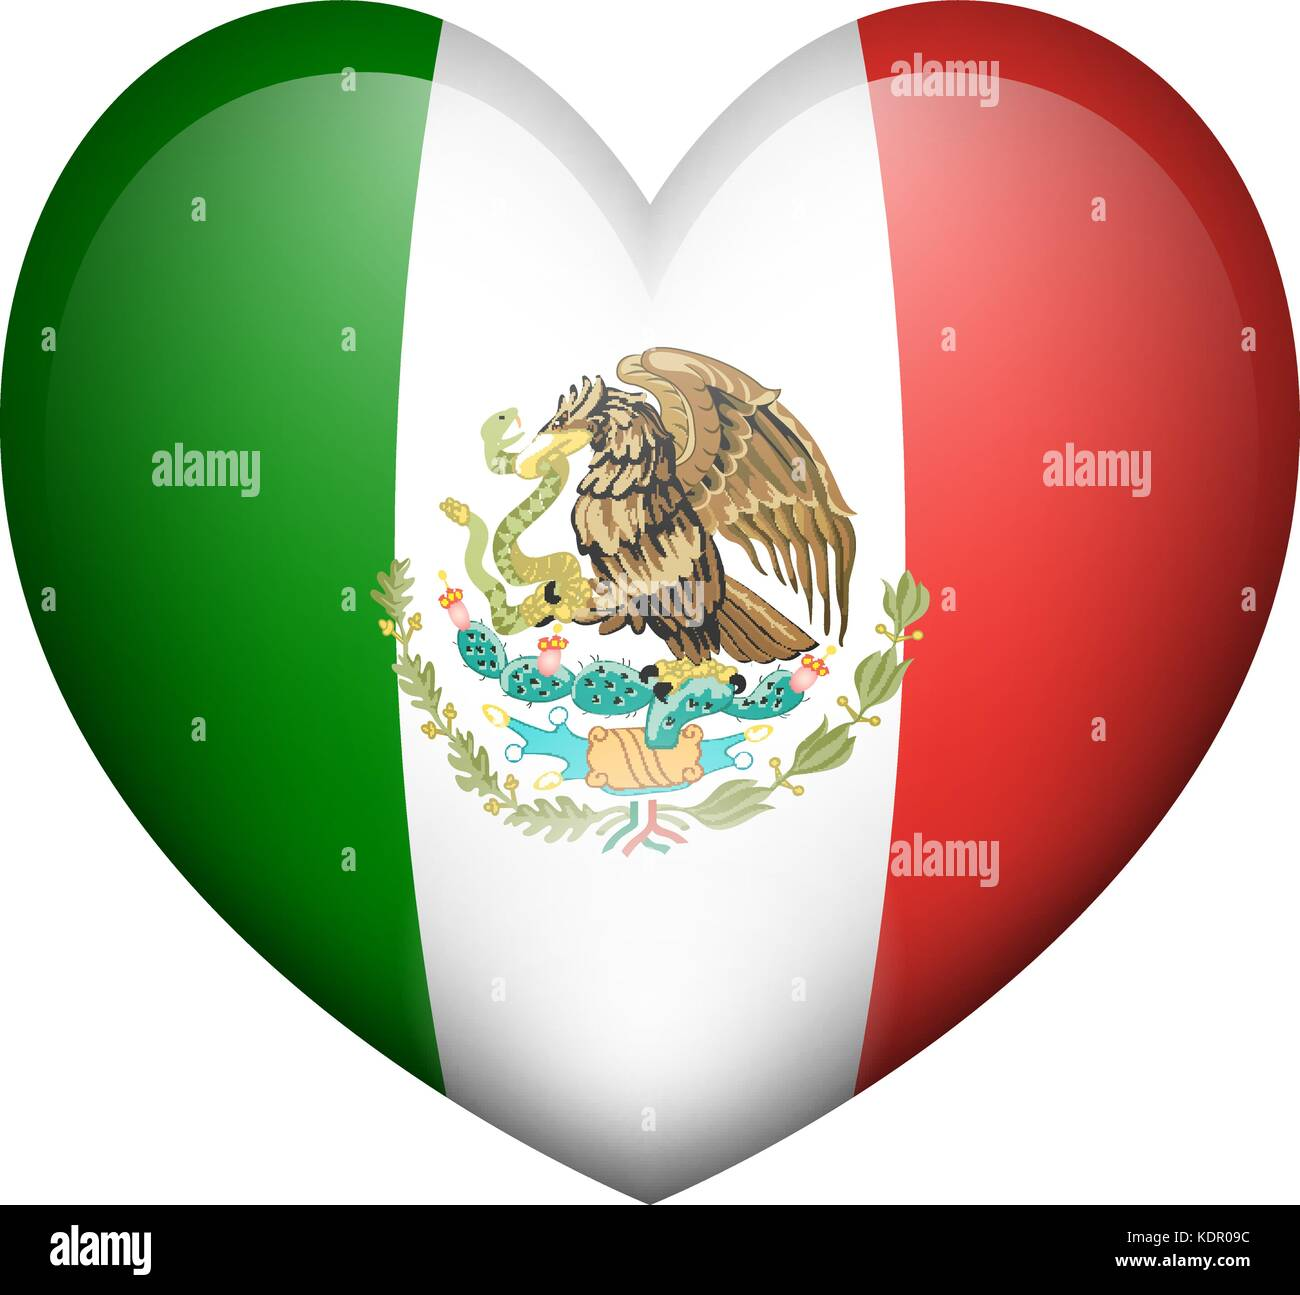 Mexico flag in heart shape illustration - Stock Image